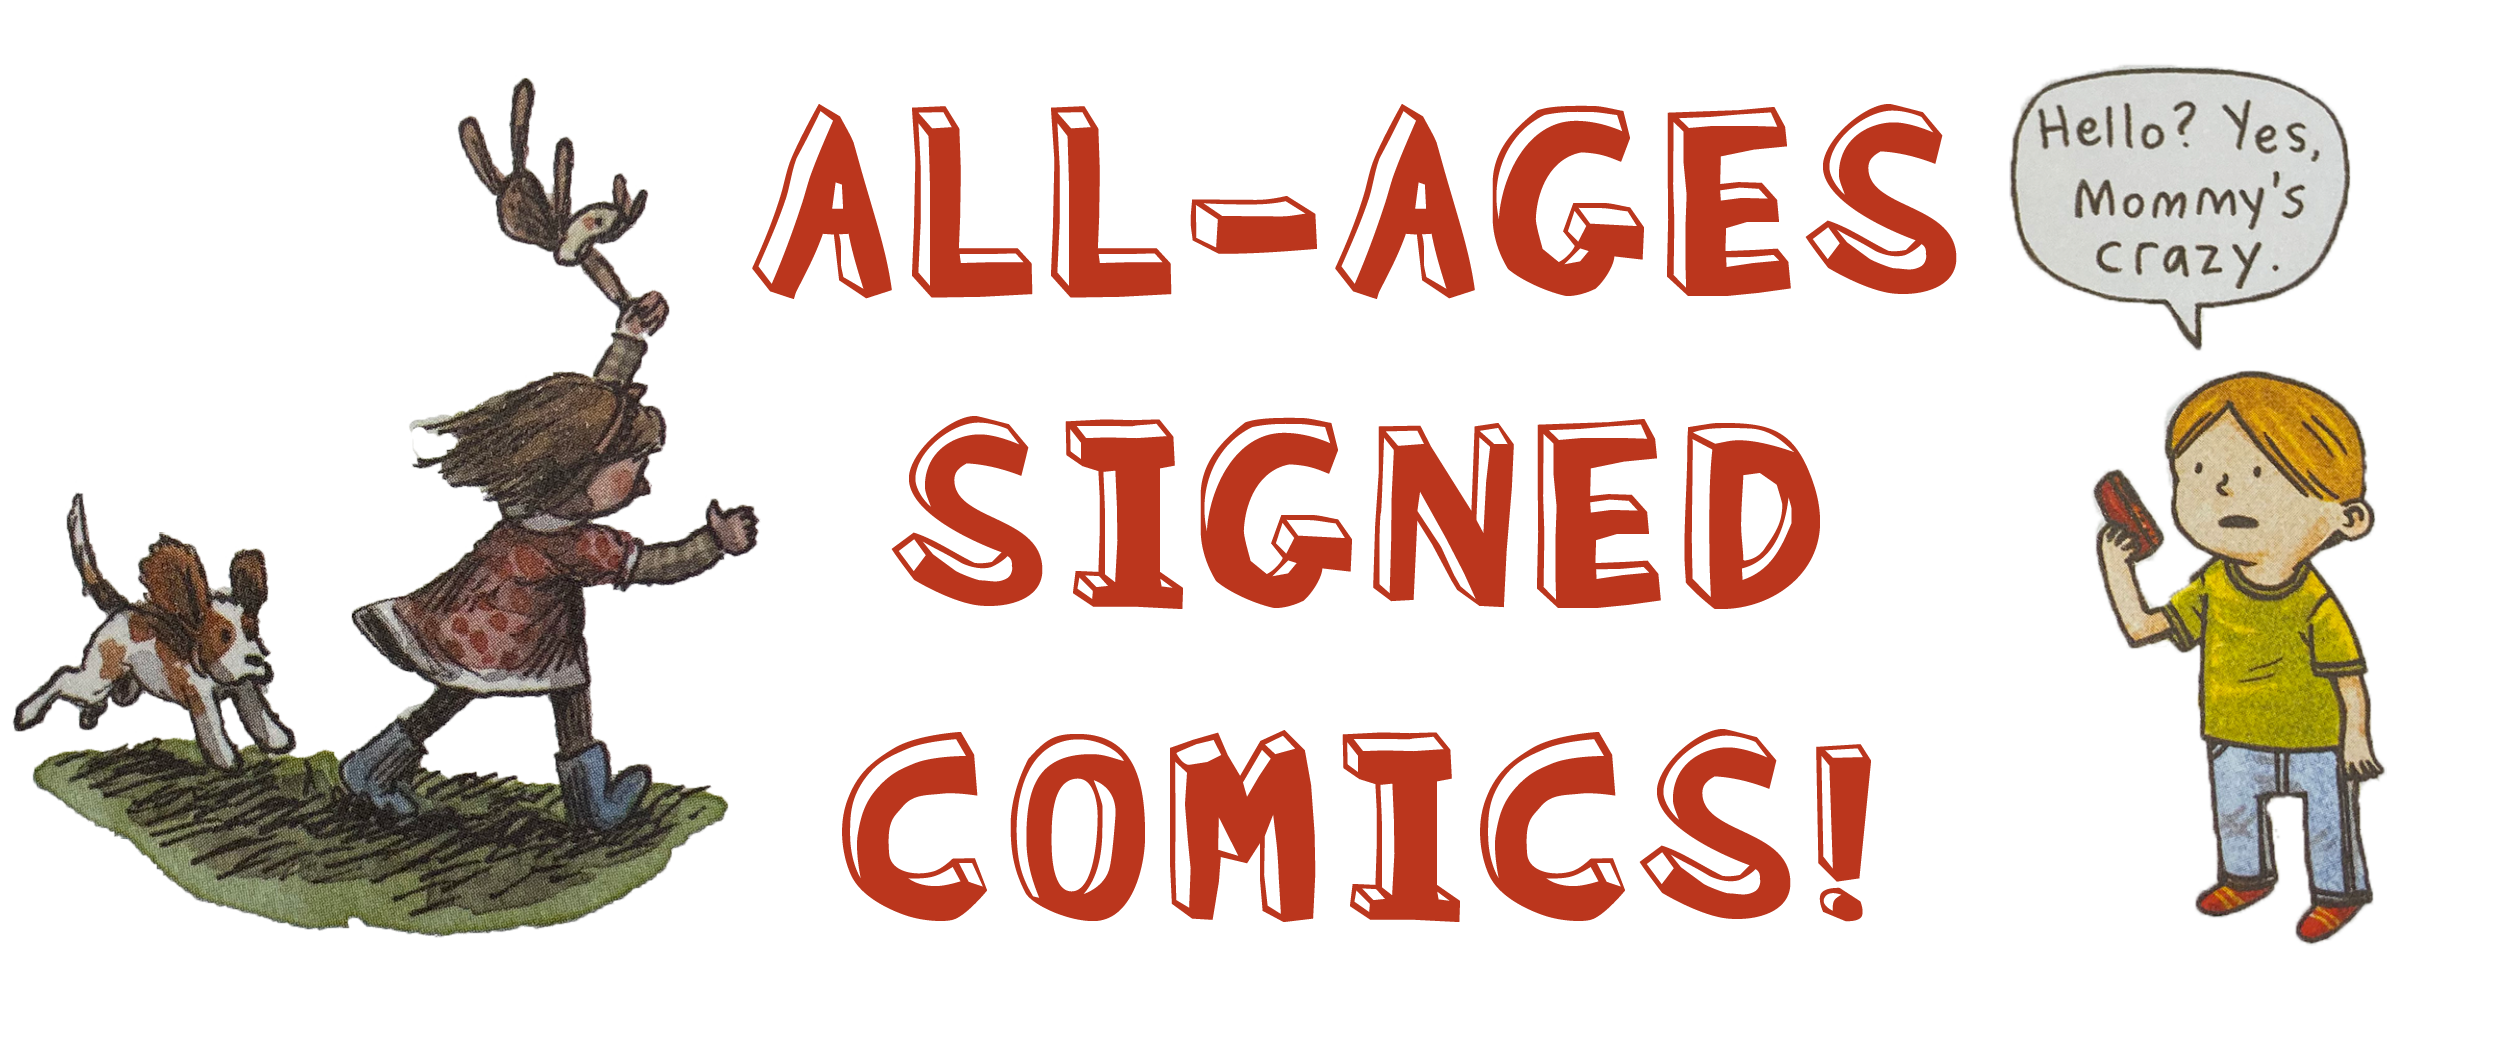 All-Ages GNs Signed by Jeffrey Brown, Liniers, & More Benefit CBLDF!